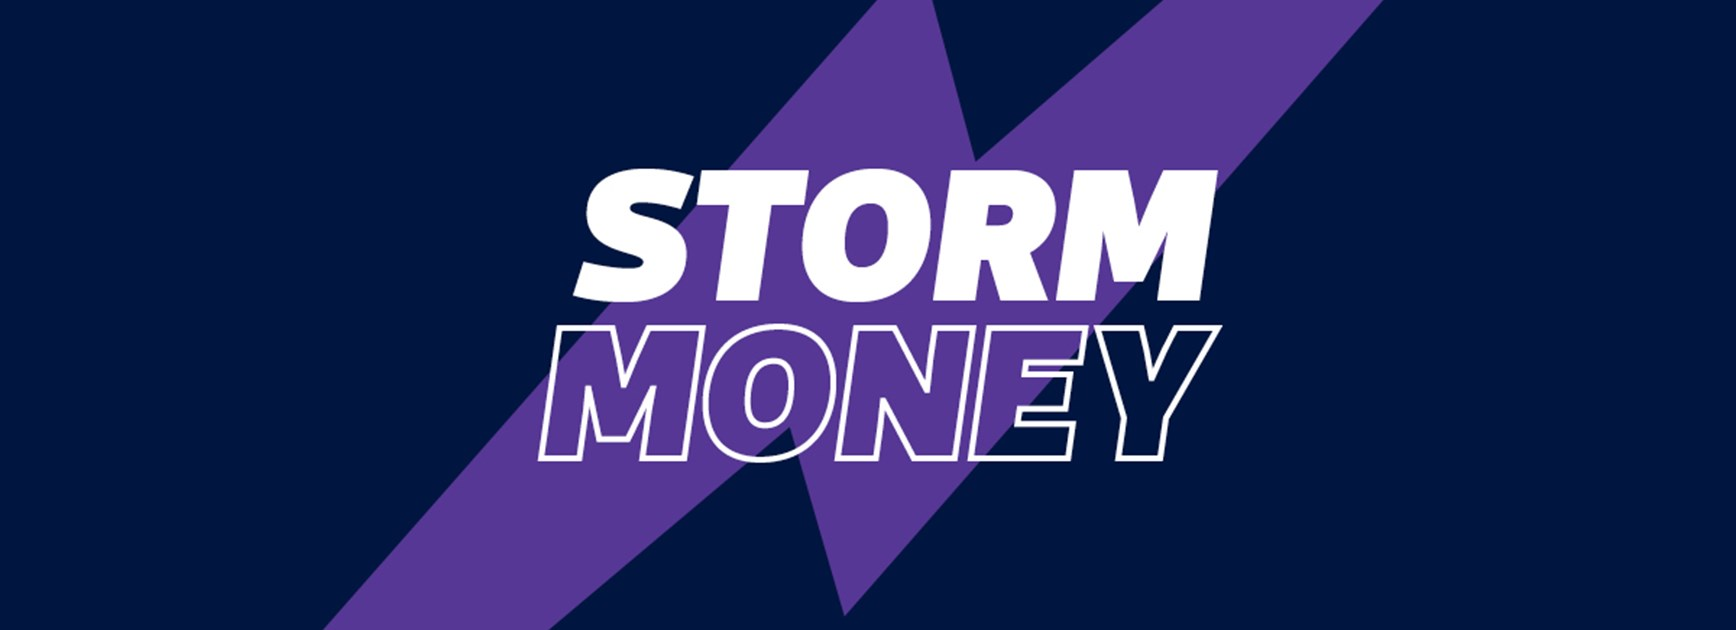 Score a great loan with Storm Money